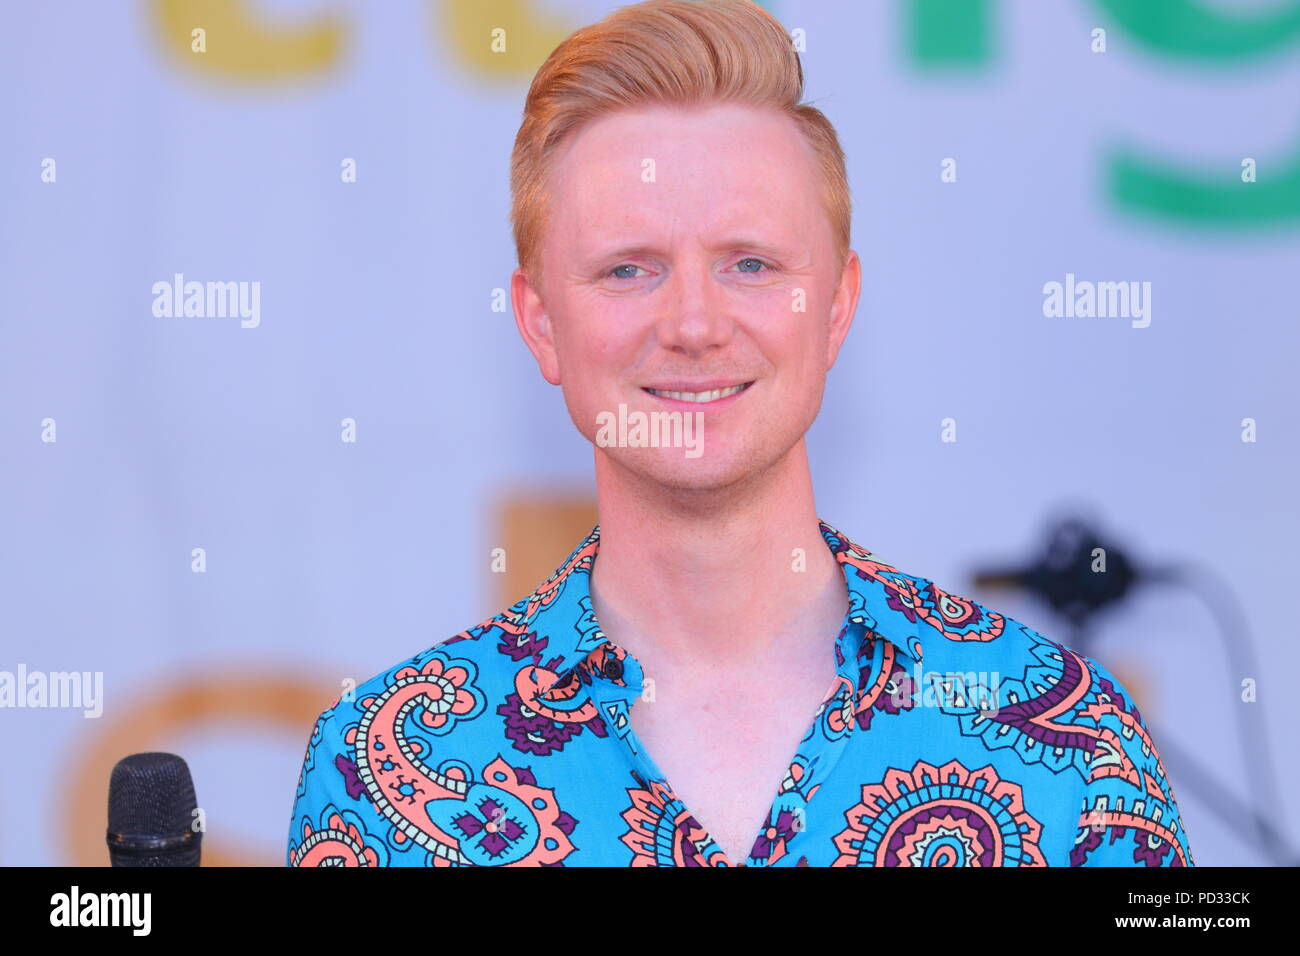 BBc weatherman Owain Wyn Evans hosting the Leeds LGBT Pride event at Millennium Square in the city centre. - Stock Image